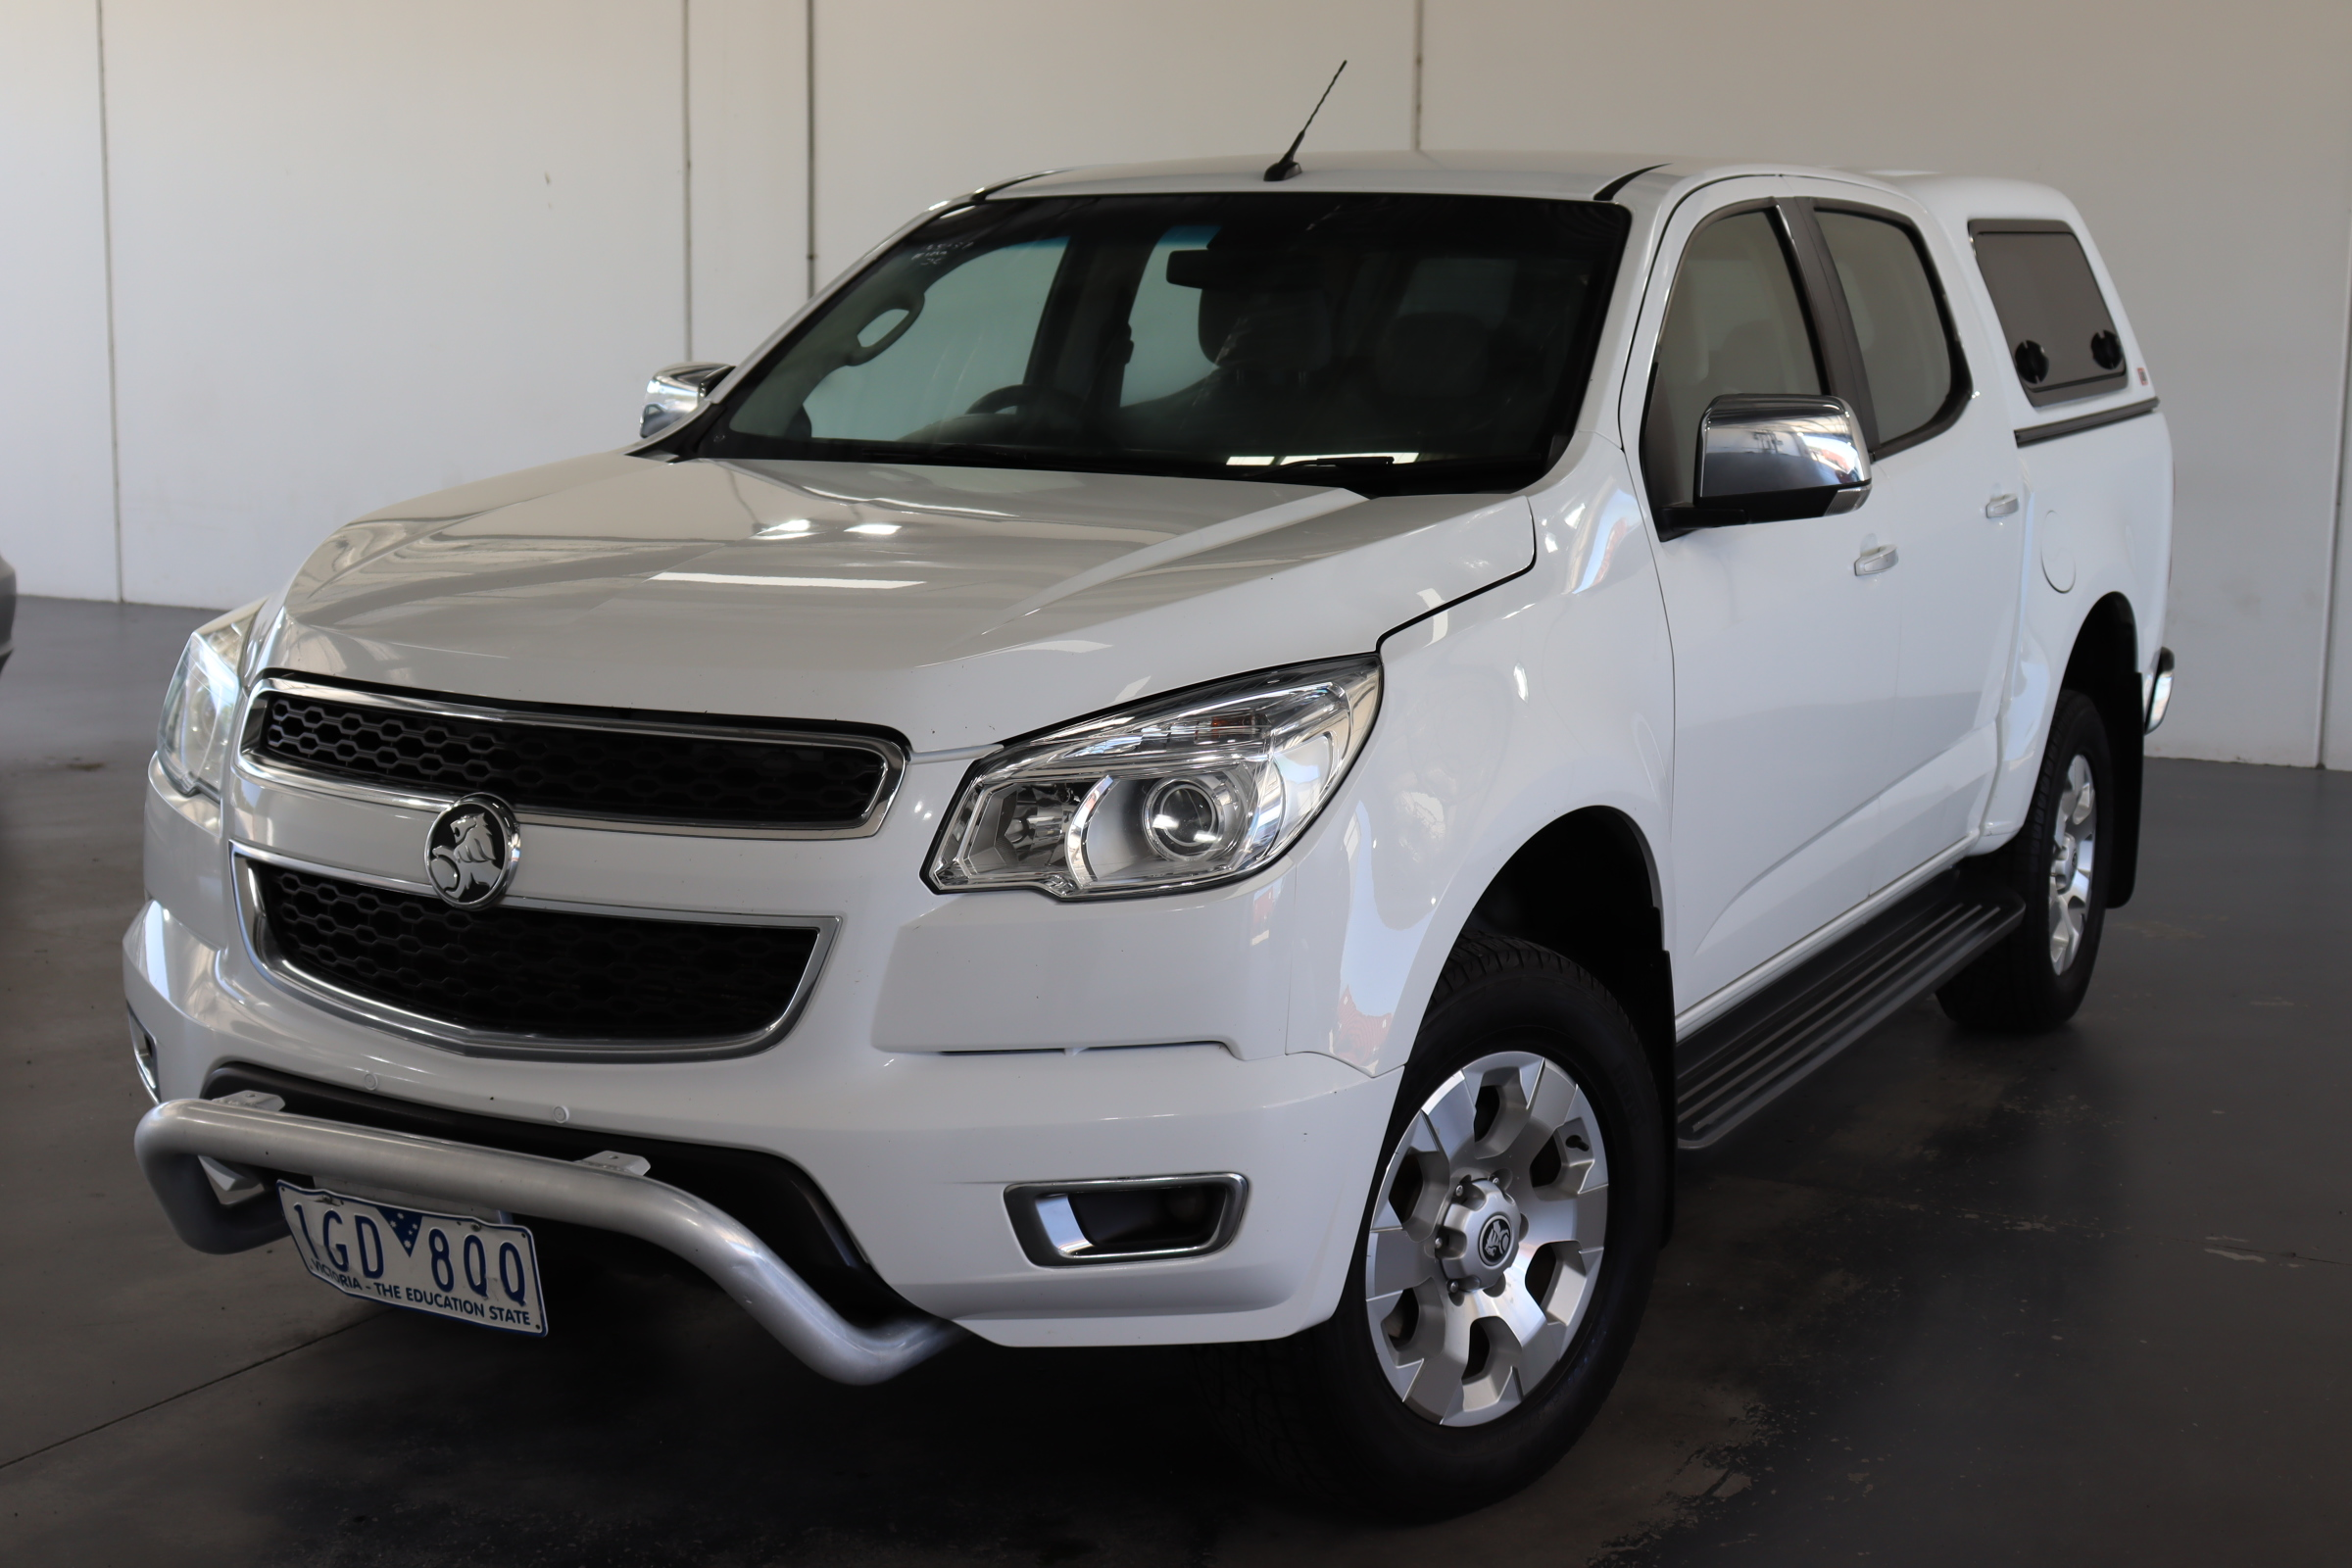 2015 Holden Colorado 4X2 LTZ RG Turbo Diesel Automatic Dual Cab